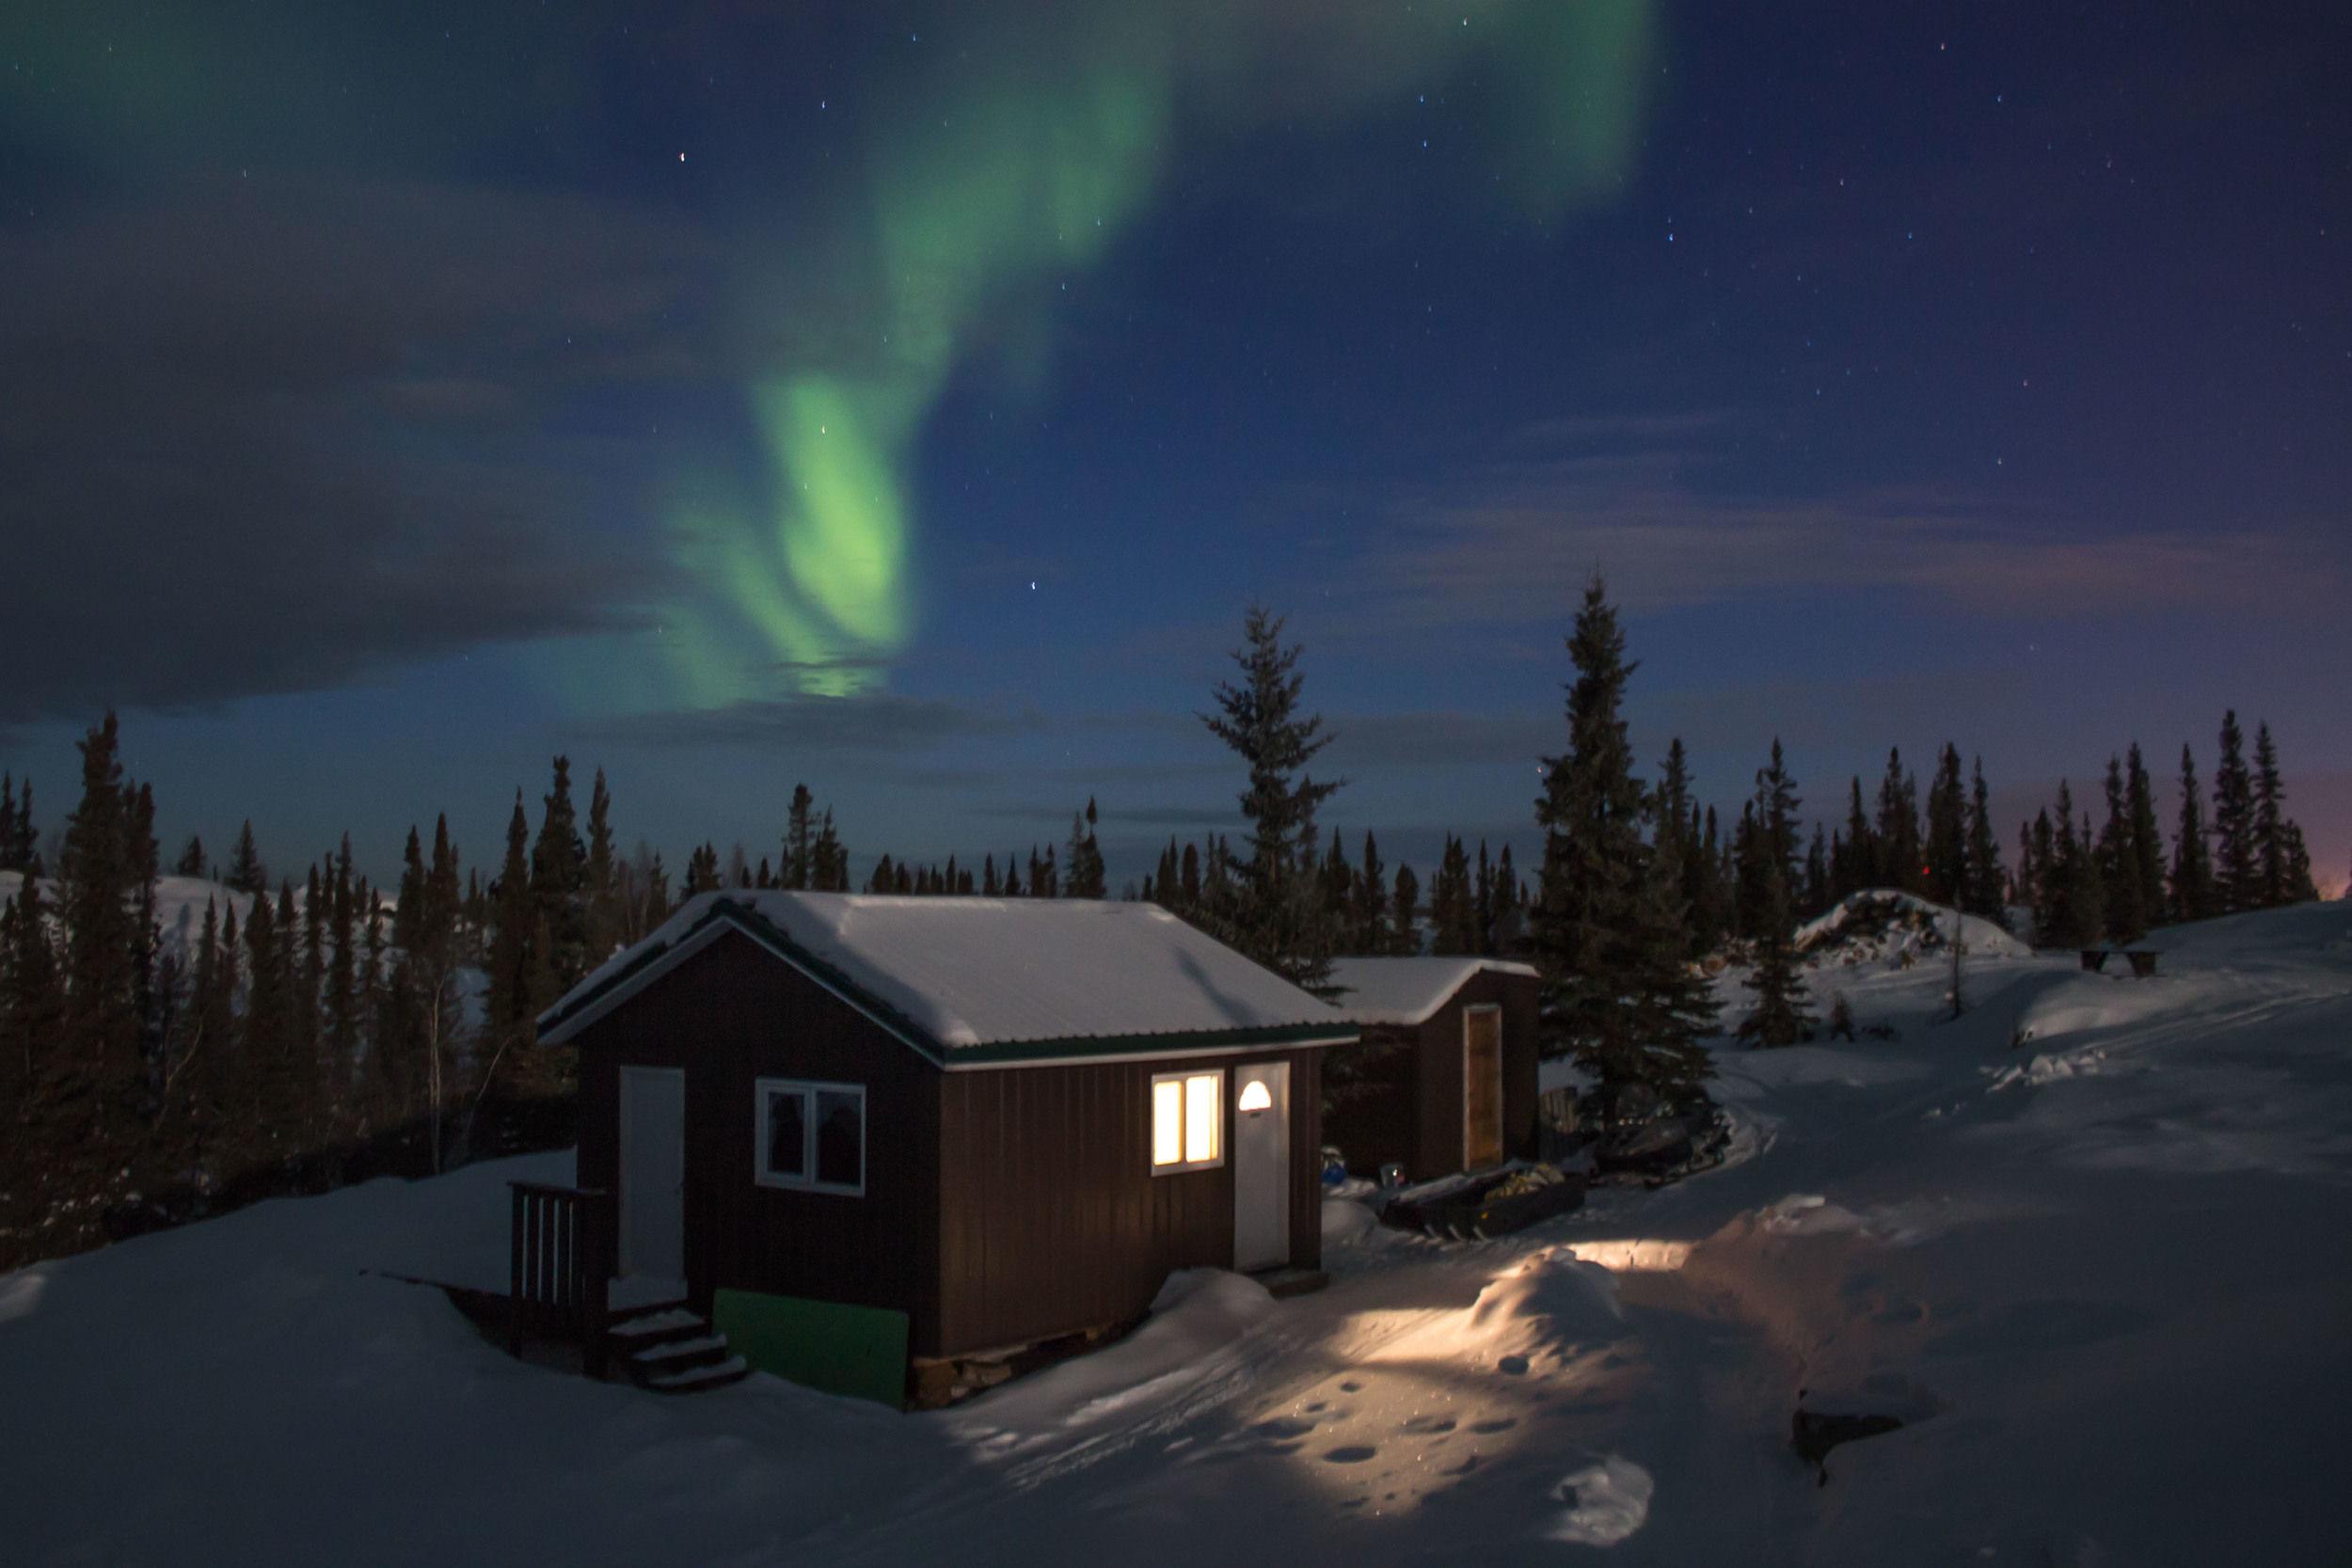 The aurora over another cluster of cottages. Photo by Sara Statham.